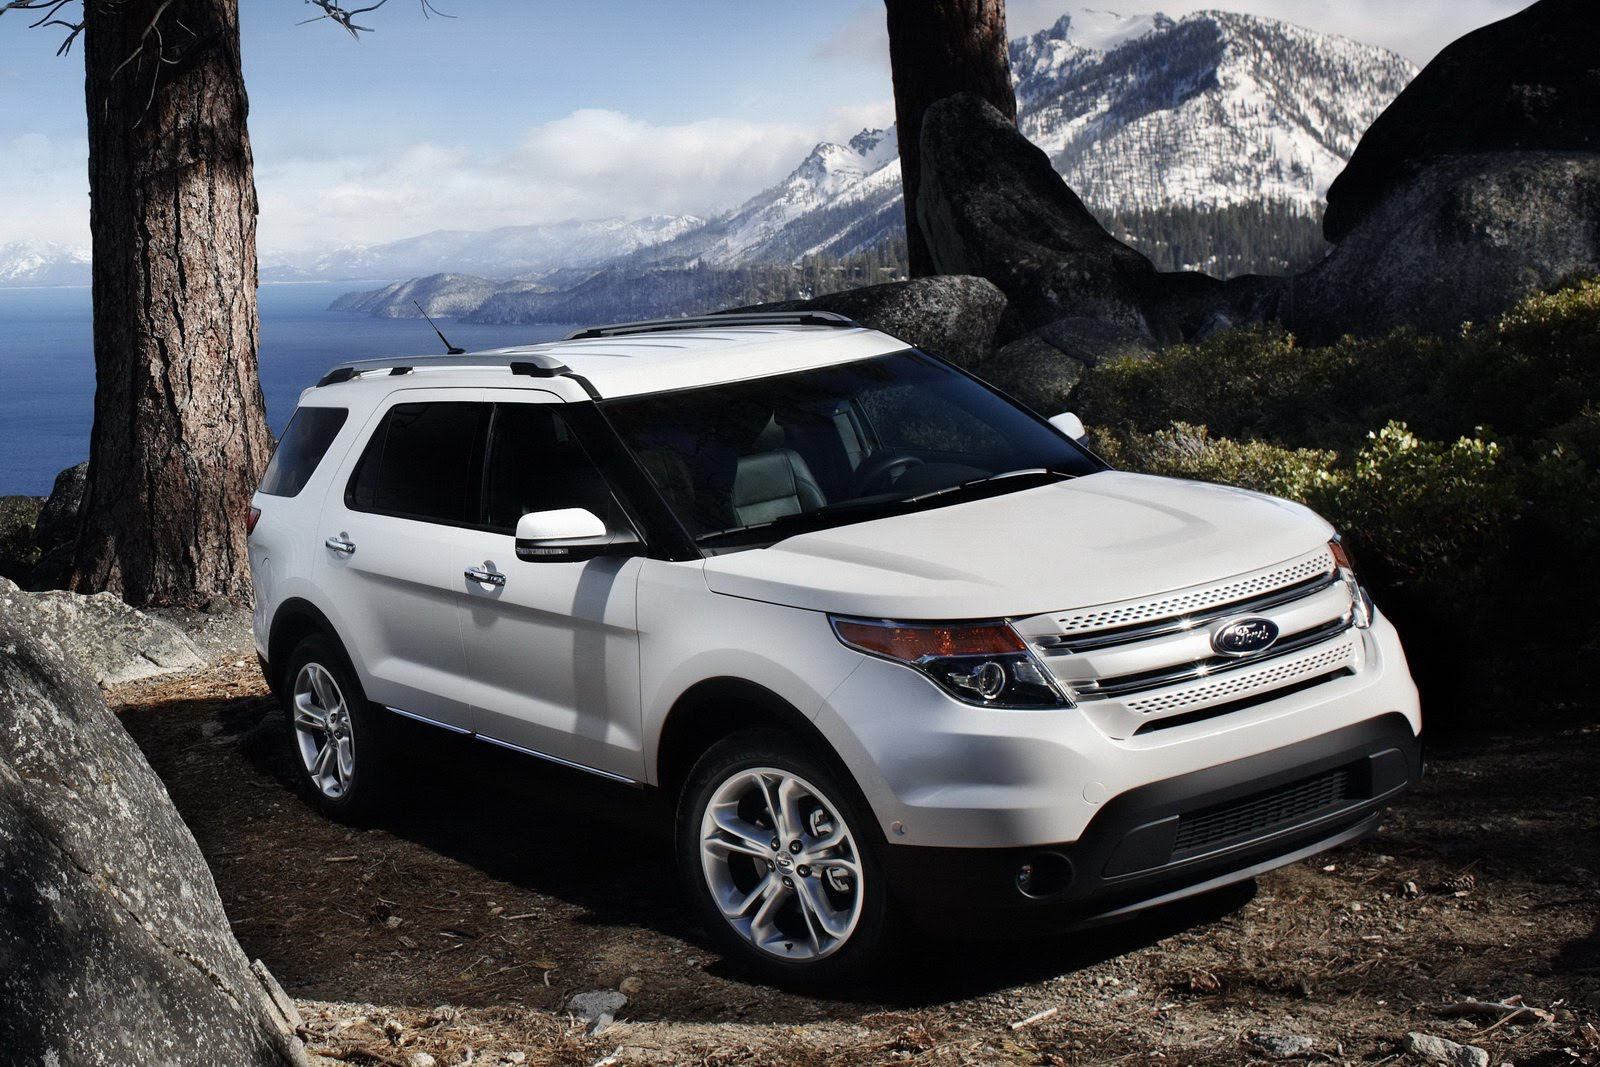 Ford Explorer 2010 Tuning >> 2011 Ford Explorer SUV – Photos, Price, Reviews, Specifications | machinespider.com